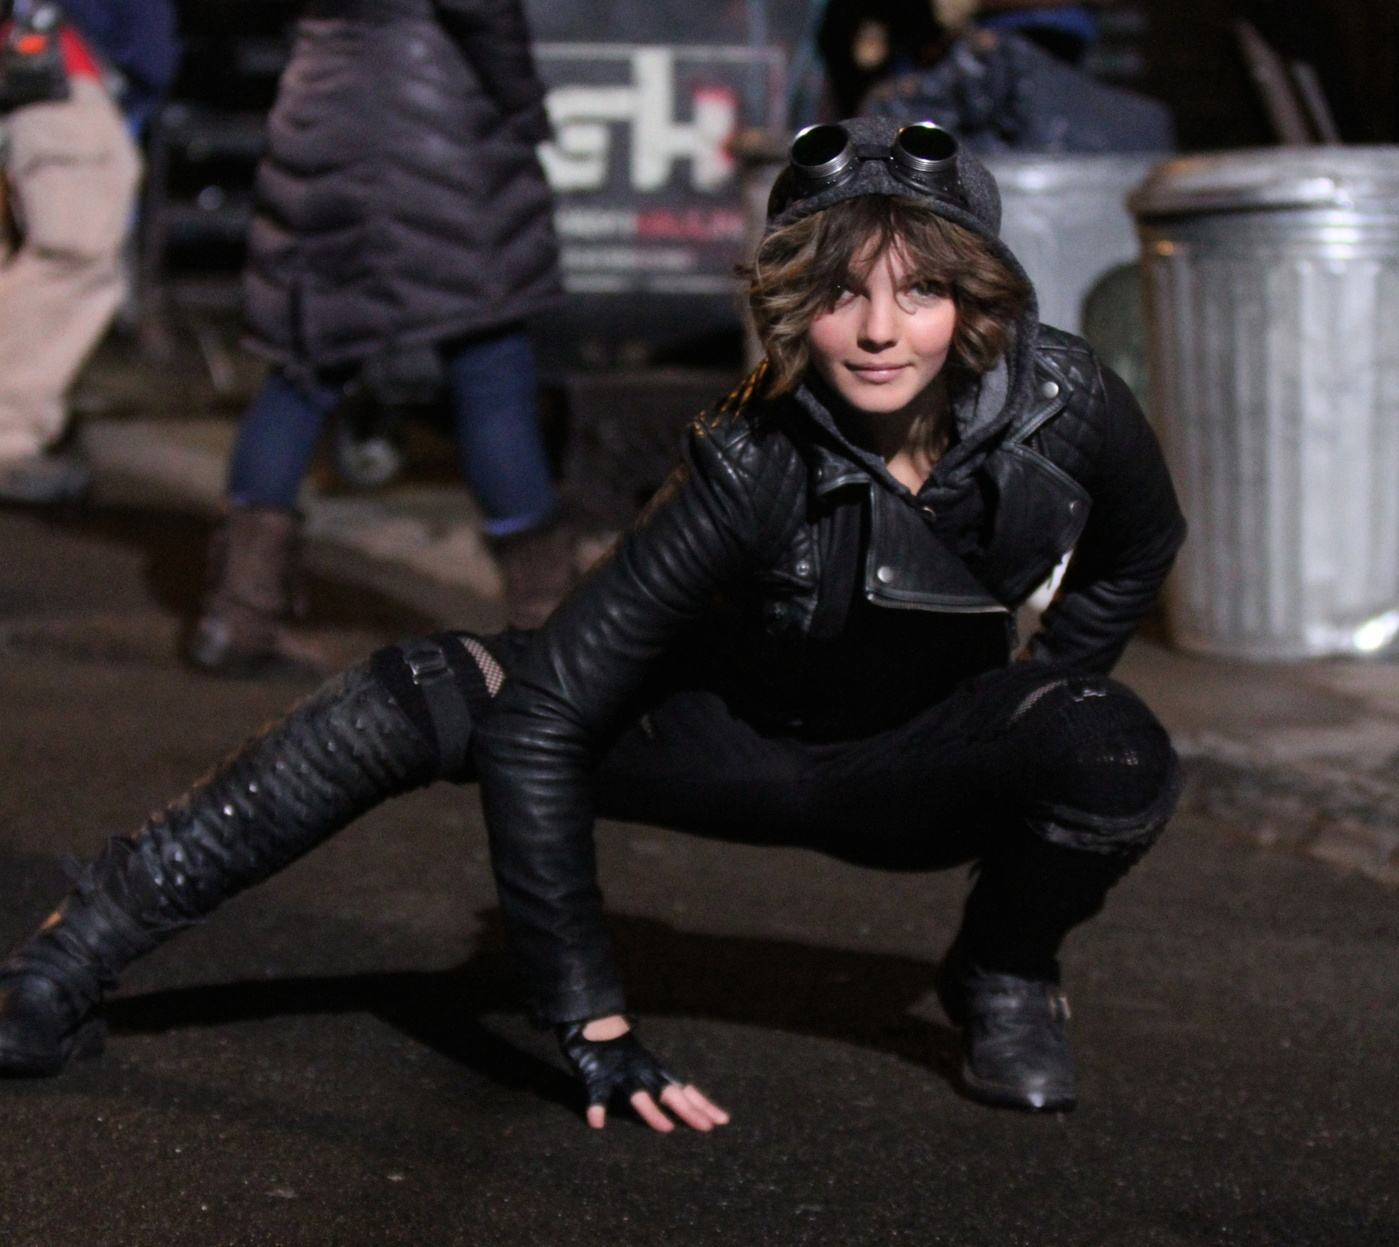 Camren Bicondova who plays Selina Kyle was pictured on her Catwoman costume on the set of the 'Gotham' TV series in Downtown, Manhattan, New York City